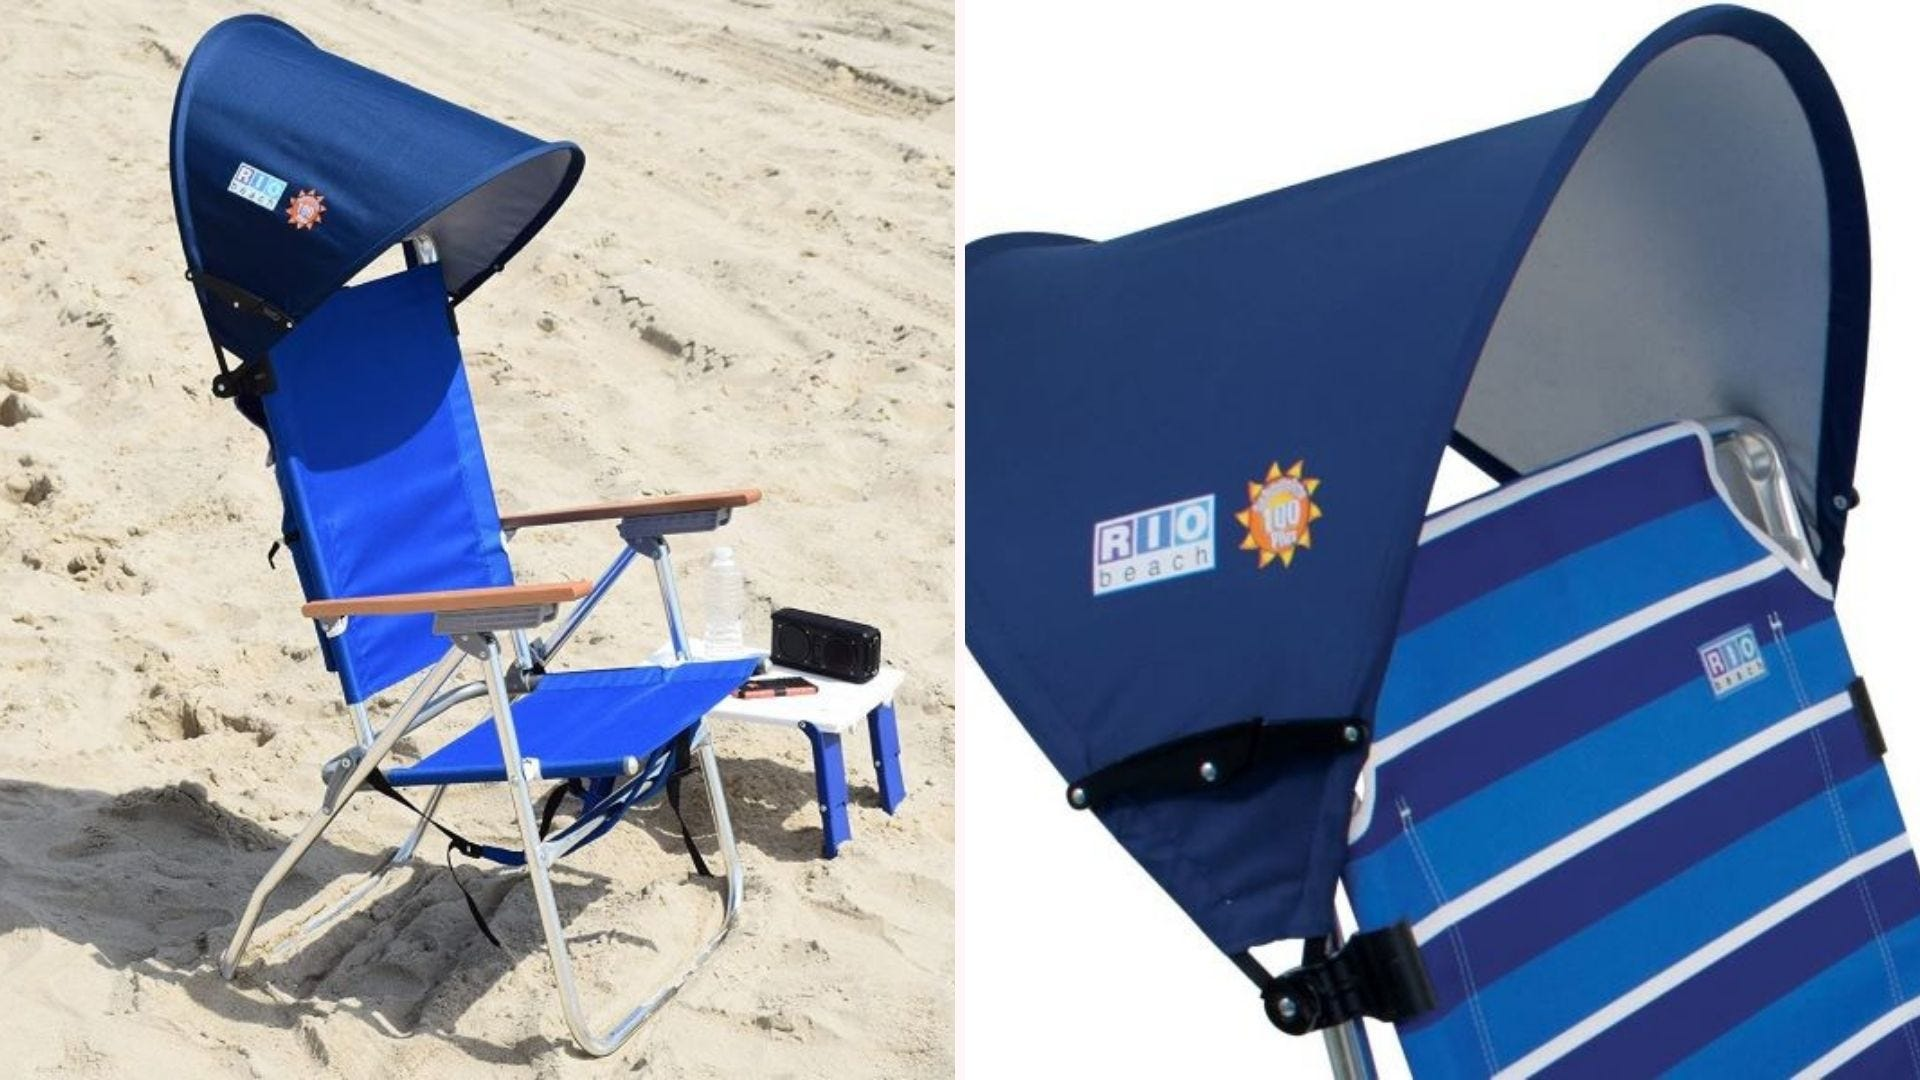 The RIO Beach Sun Shade attached to two different chairs.